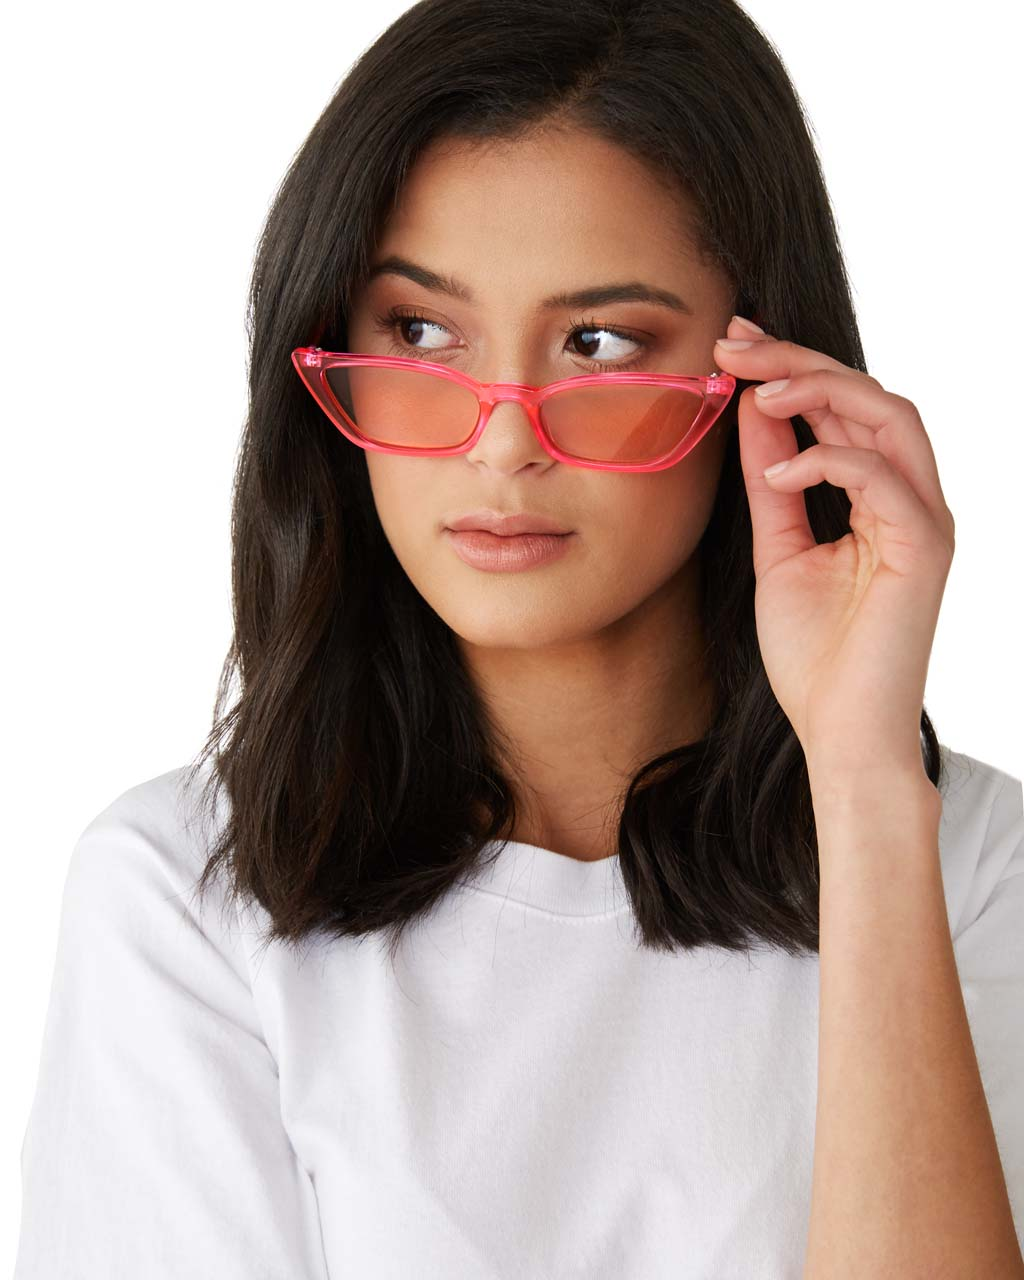 Brunette woman wearing transparent pink sunglasses with pink lenses and touching the side of the glasses.